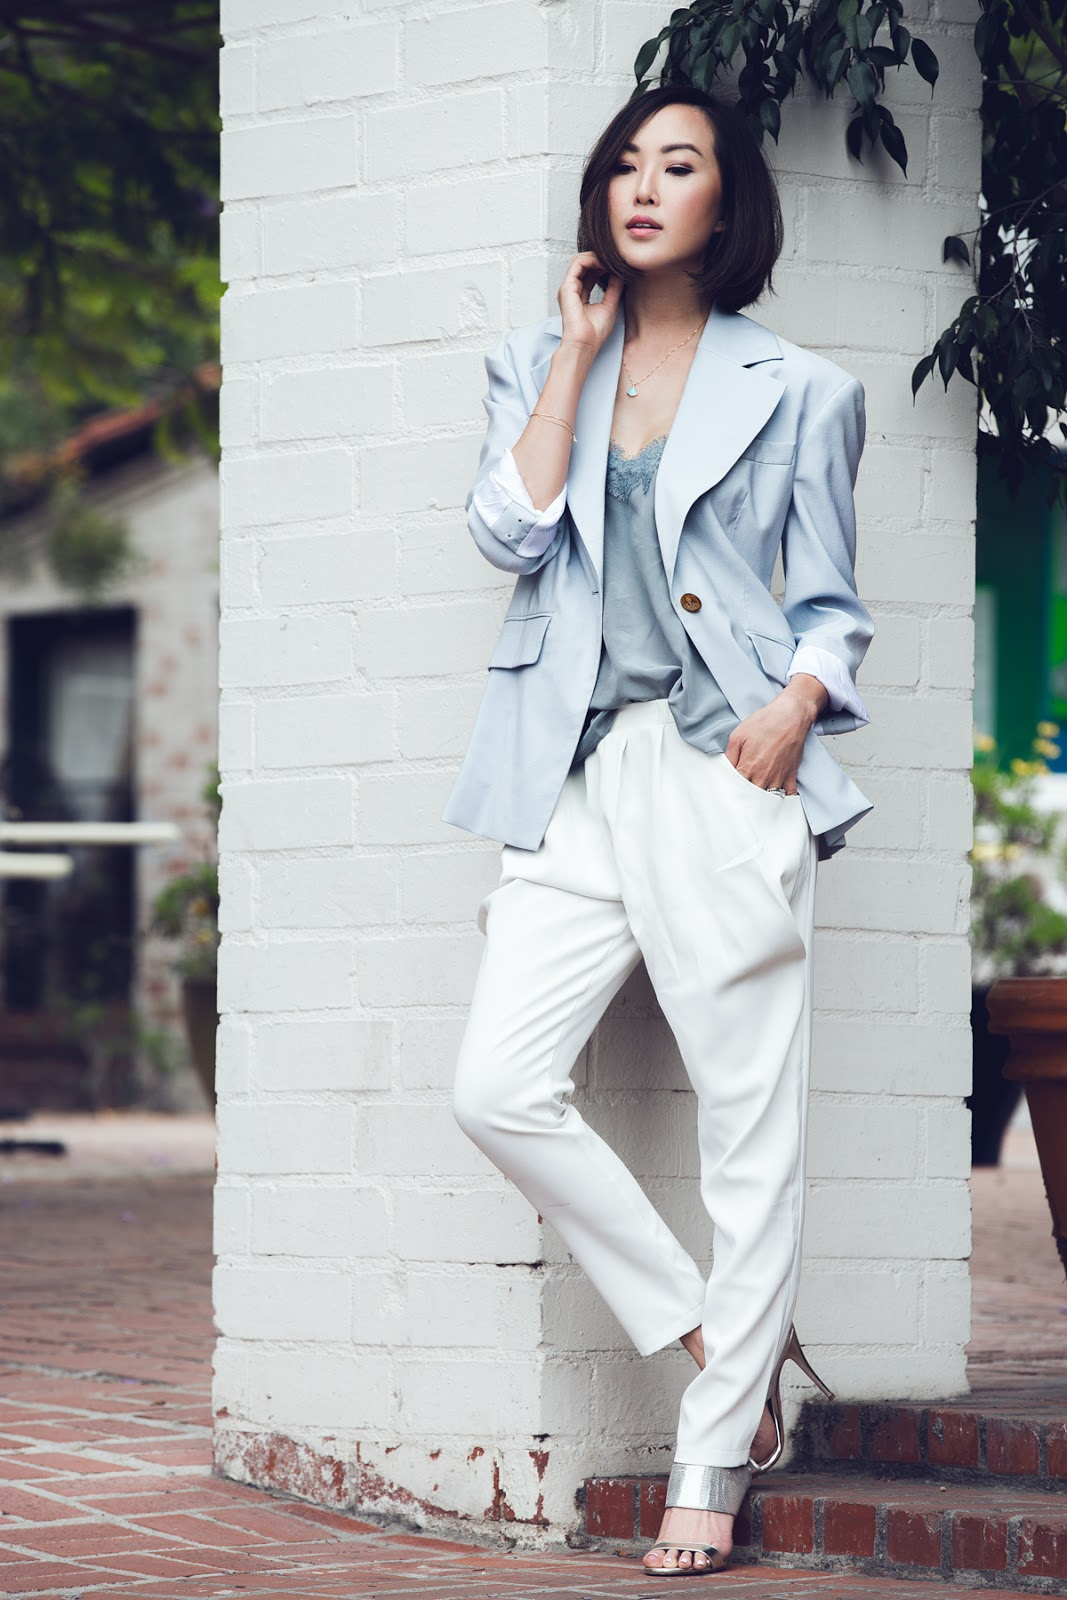 The Style Bloggers No 20 Chriselle Lim For The Diva Collection By Bulgari Cool Chic Style